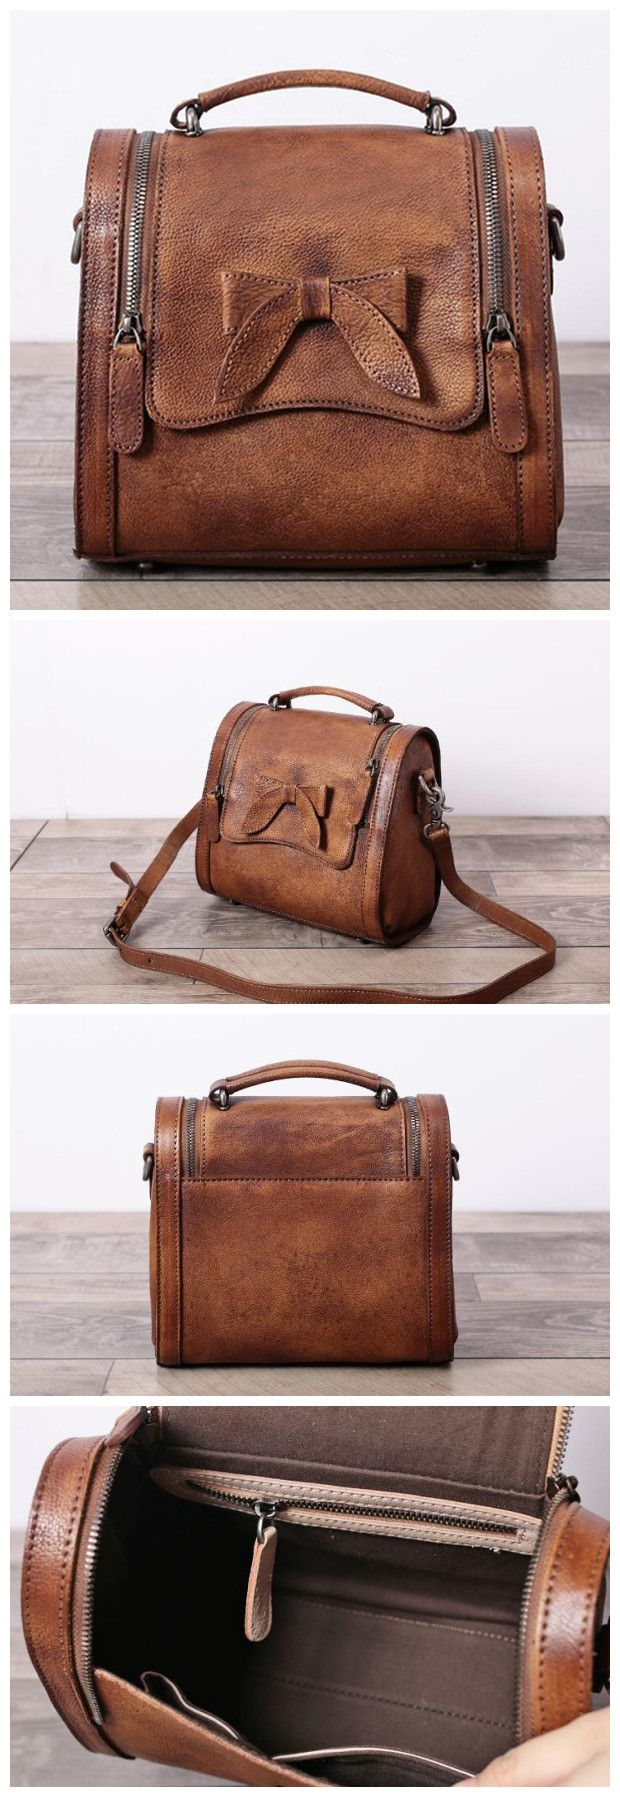 Leather Satchel Bag Doctor Bag Messenger Shoulder Bag We use genuine cow leather, quality hardware and fabric to make the bag as good as it is. •Comfortable Shoulder Strap. • Inside zipper pocket, cel